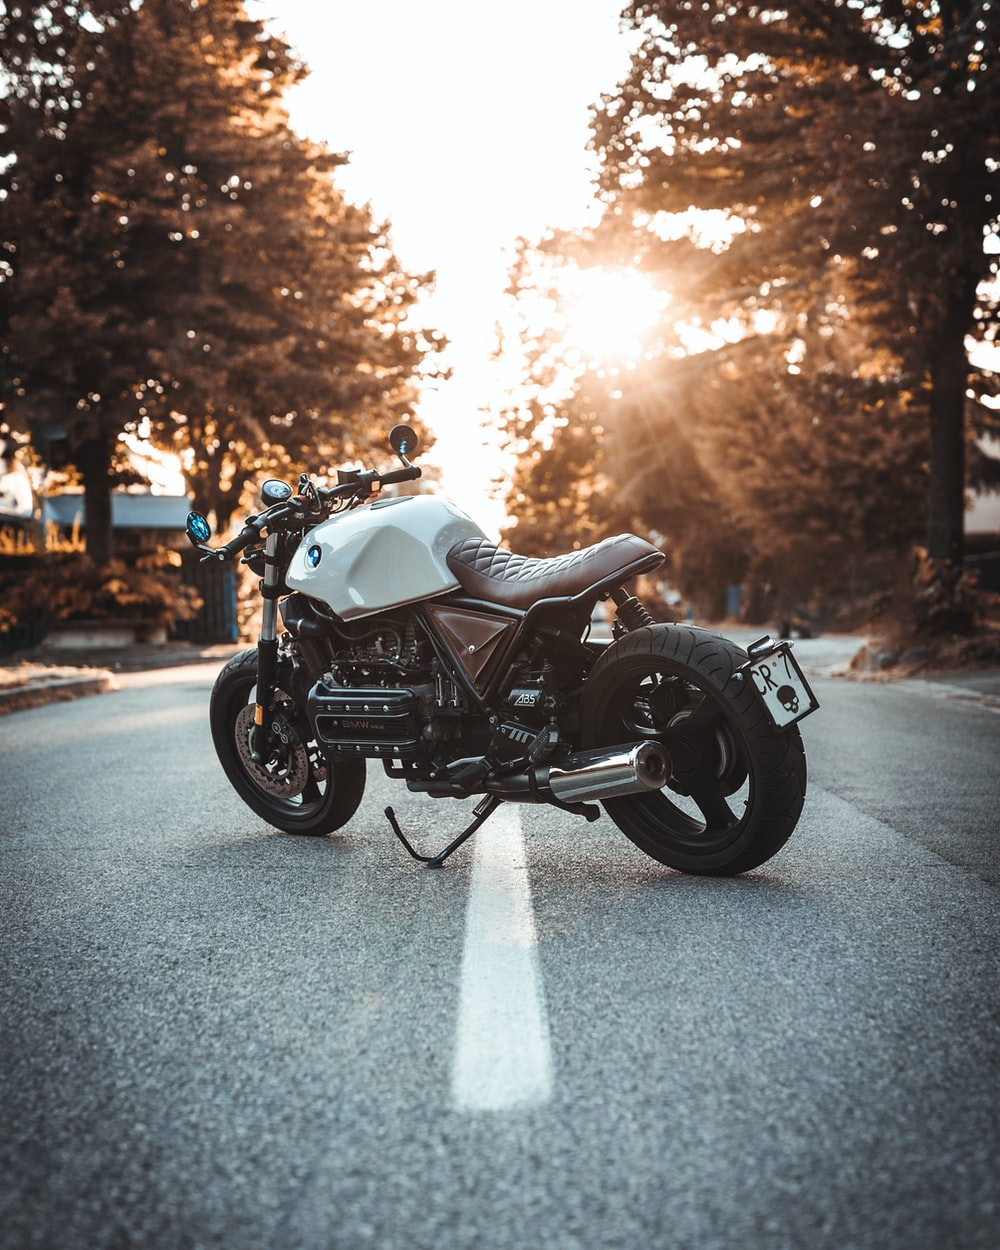 20+ Best Free Motorcycle Pictures On Unsplash